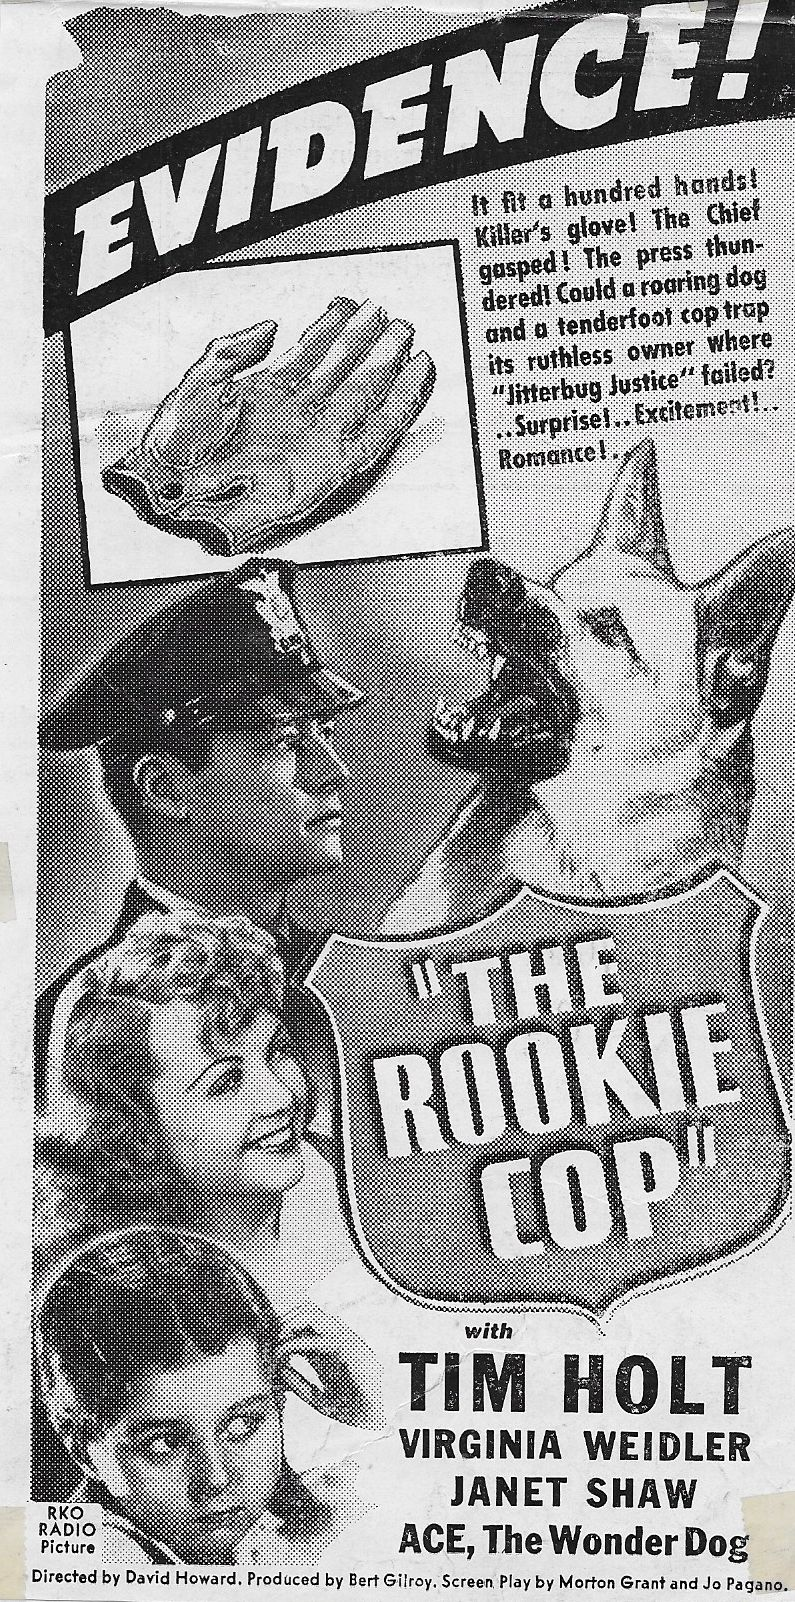 Tim Holt, Janet Shaw, Virginia Weidler, and Ace the Wonder Dog in The Rookie Cop (1939)